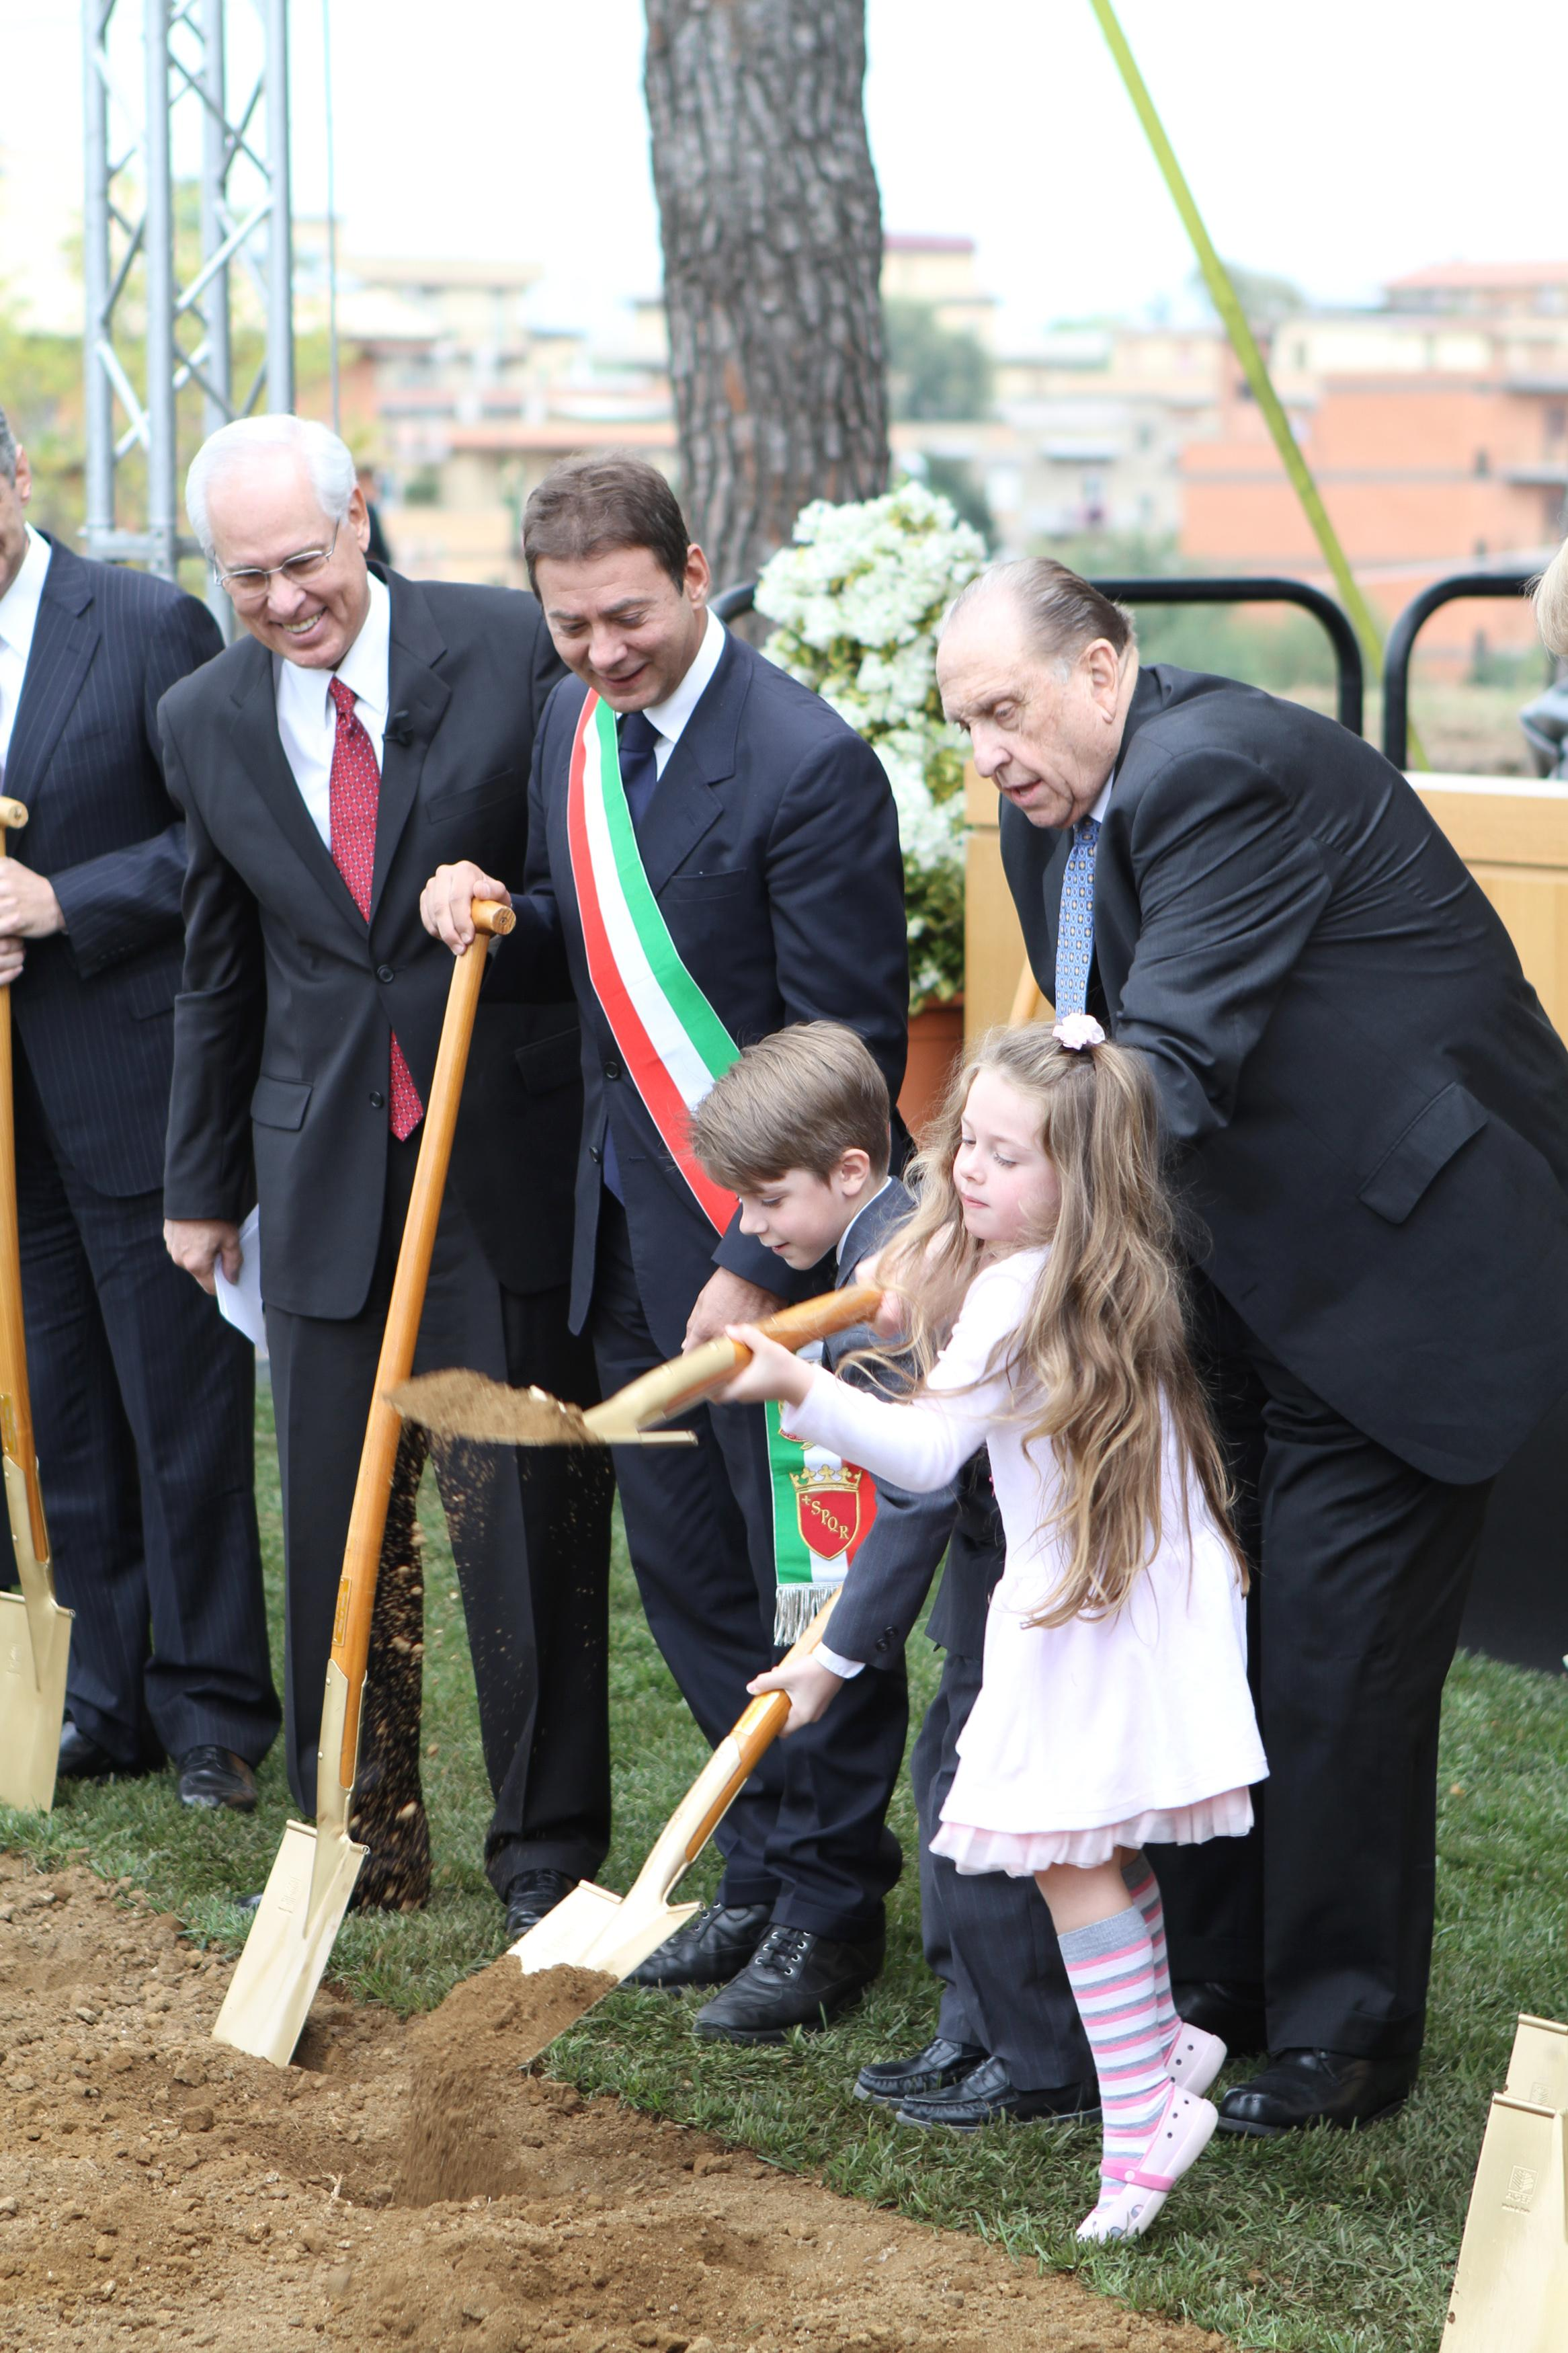 President Thomas S. Monson, with an assist from local children, breaks ground on the Rome Italy Temple on October 23, 2010. (Photo: MormonNewsroom.org){&amp;nbsp;}<p></p>